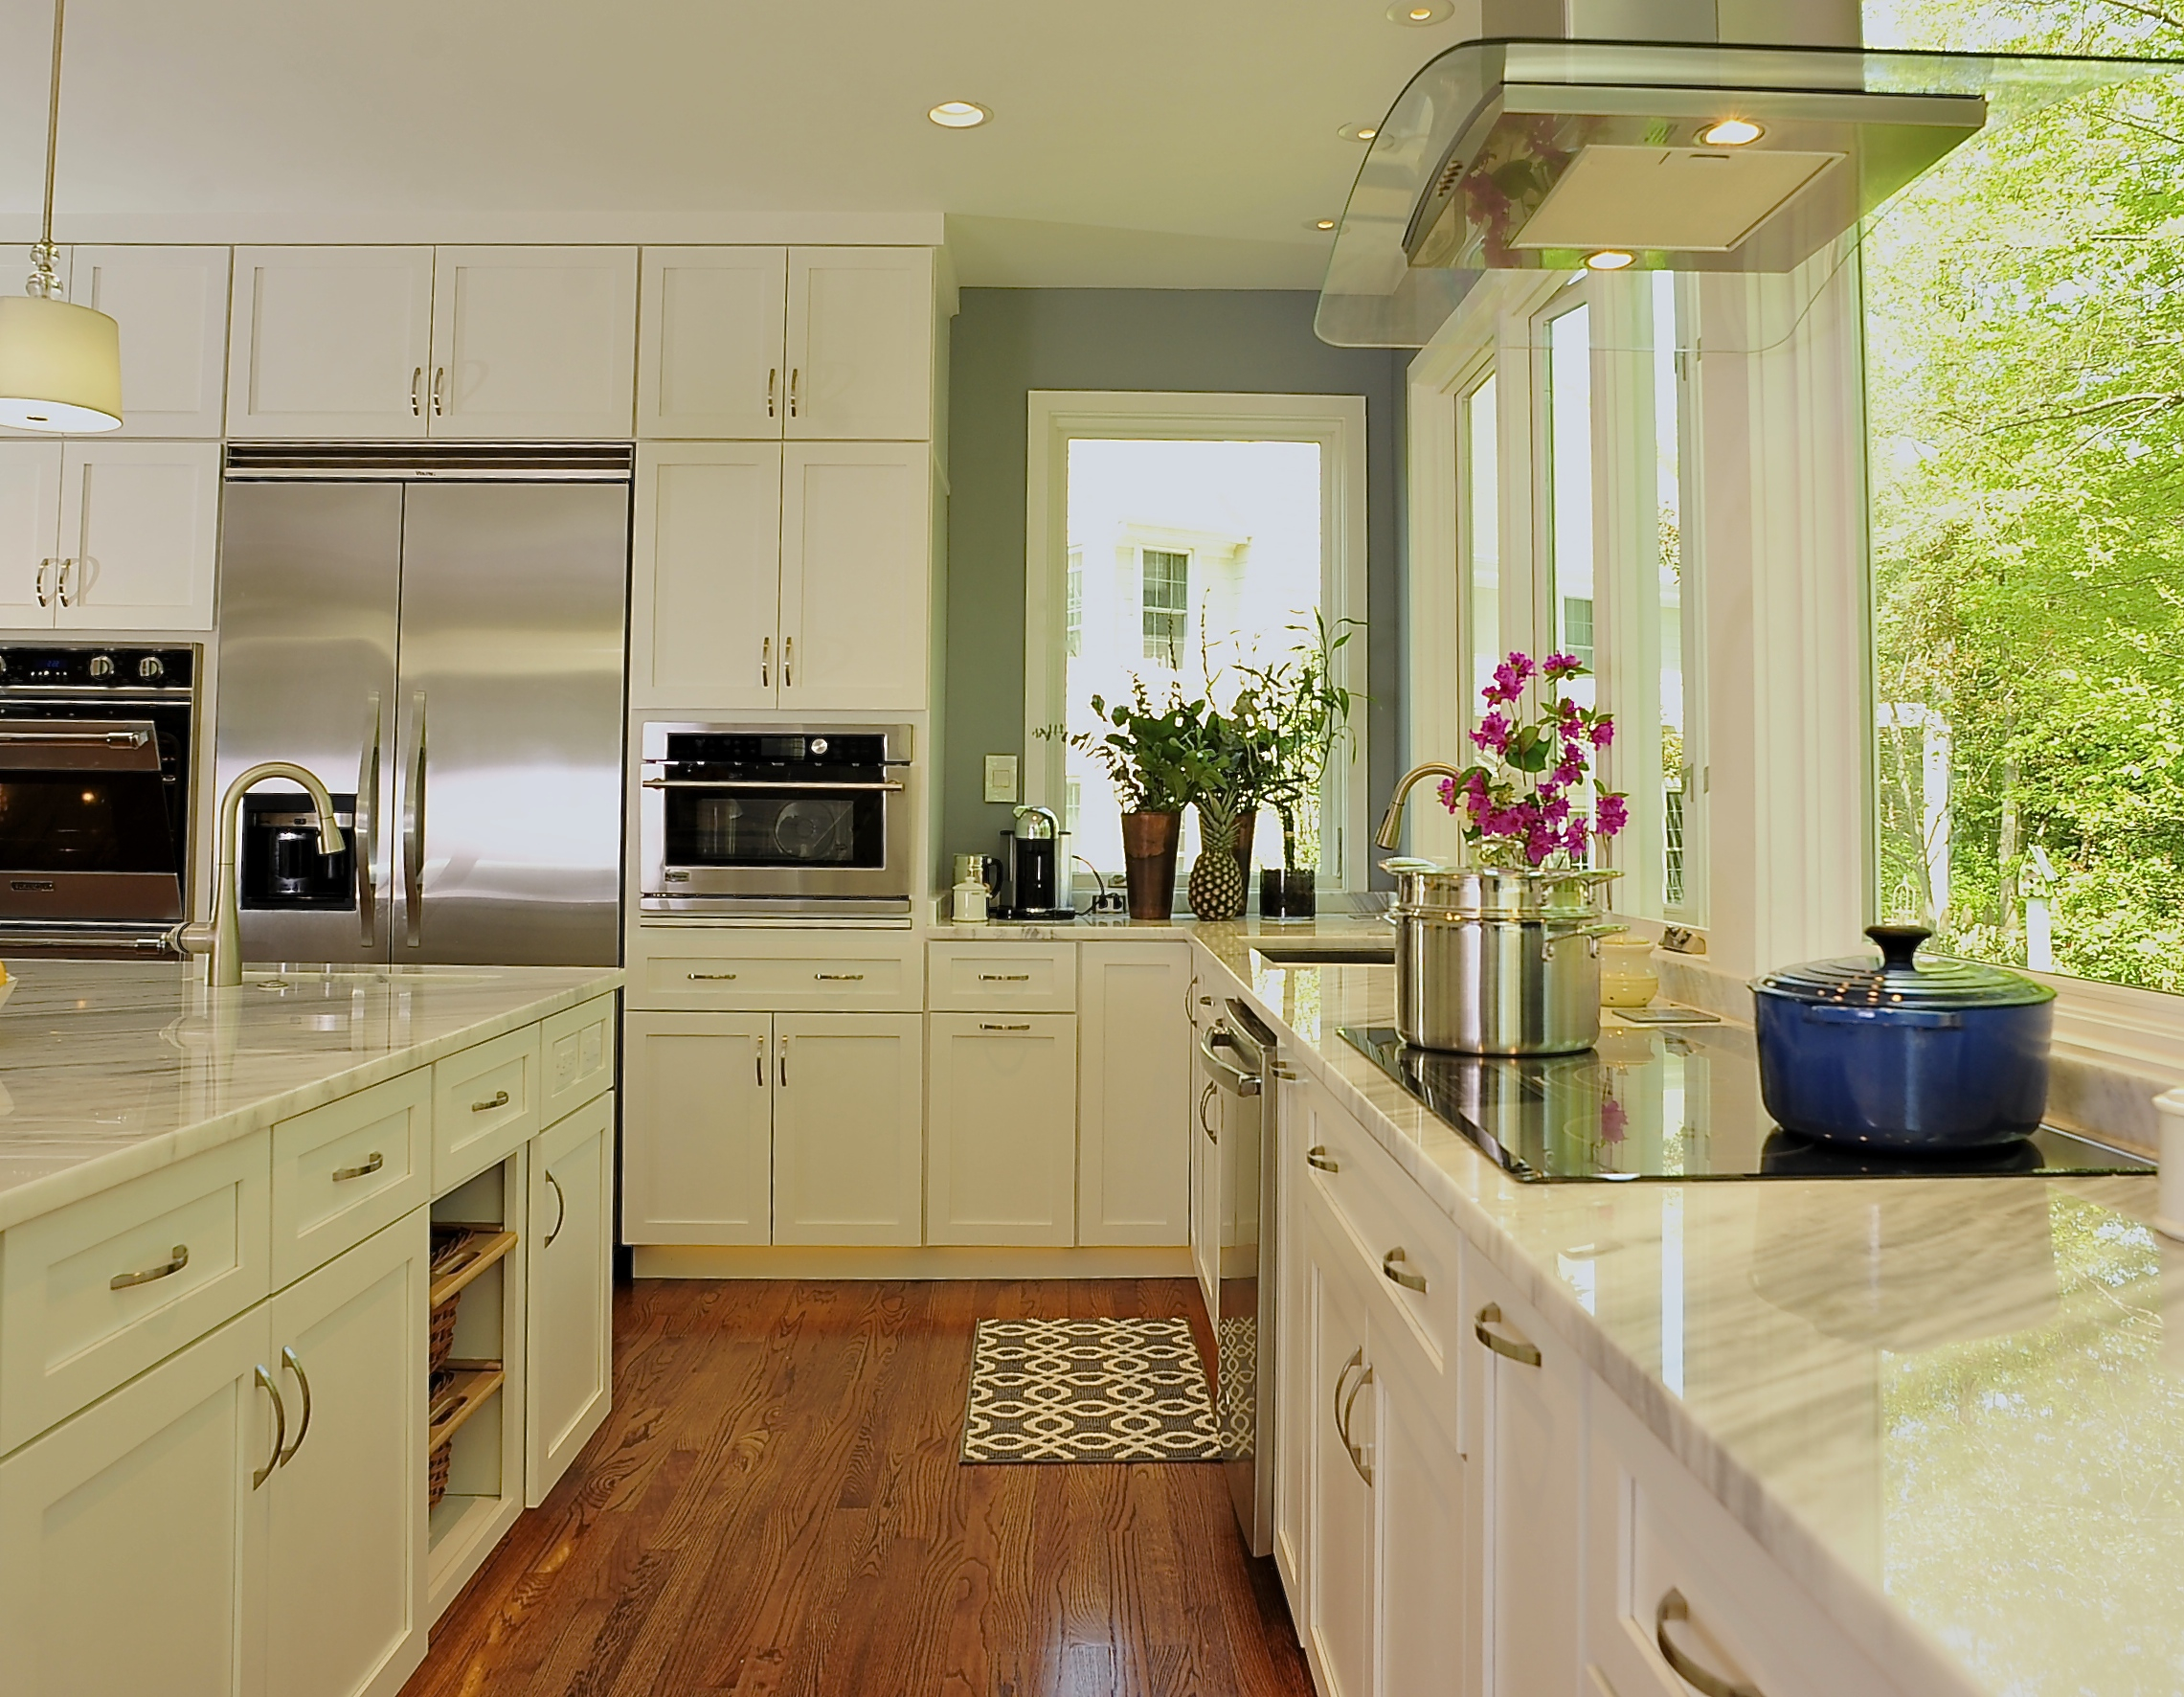 A clean kitchen is designed to be open with a well thought out work triangle and plenty of cabinet storage.